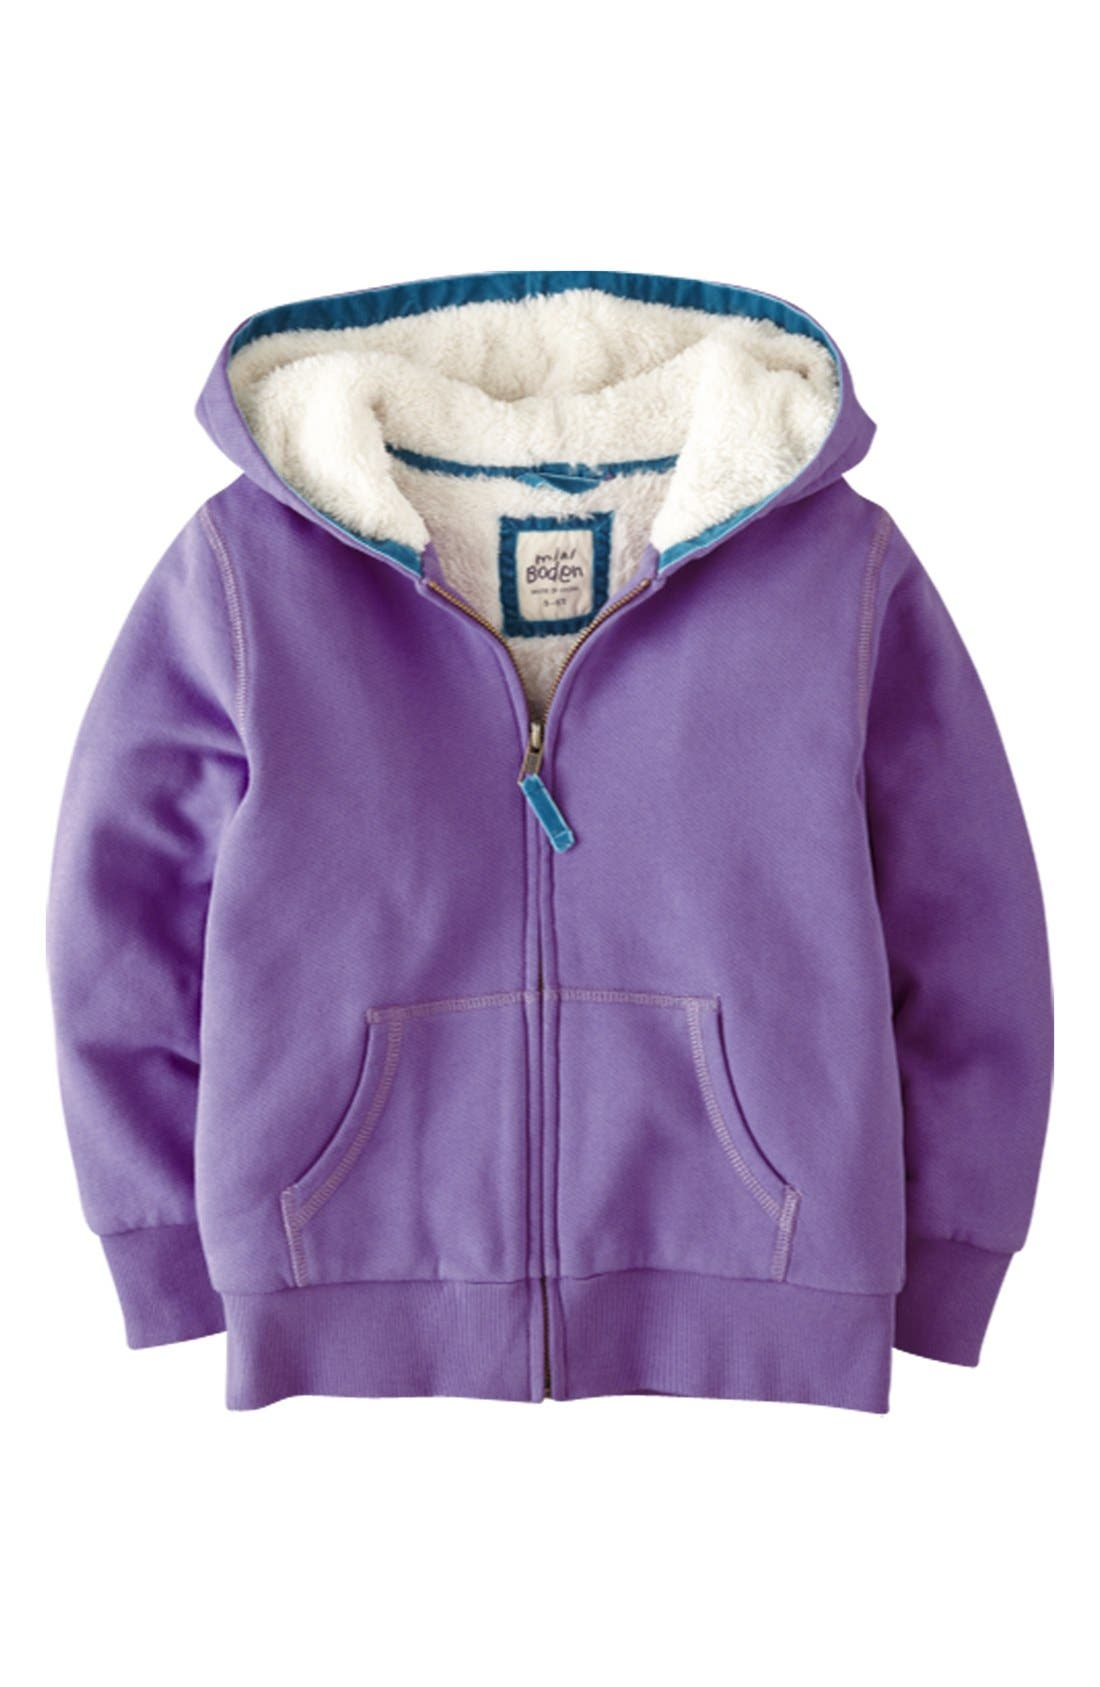 Alternate Image 1 Selected - Mini Boden 'Shaggy' Lined Jacket (Toddler Girls)